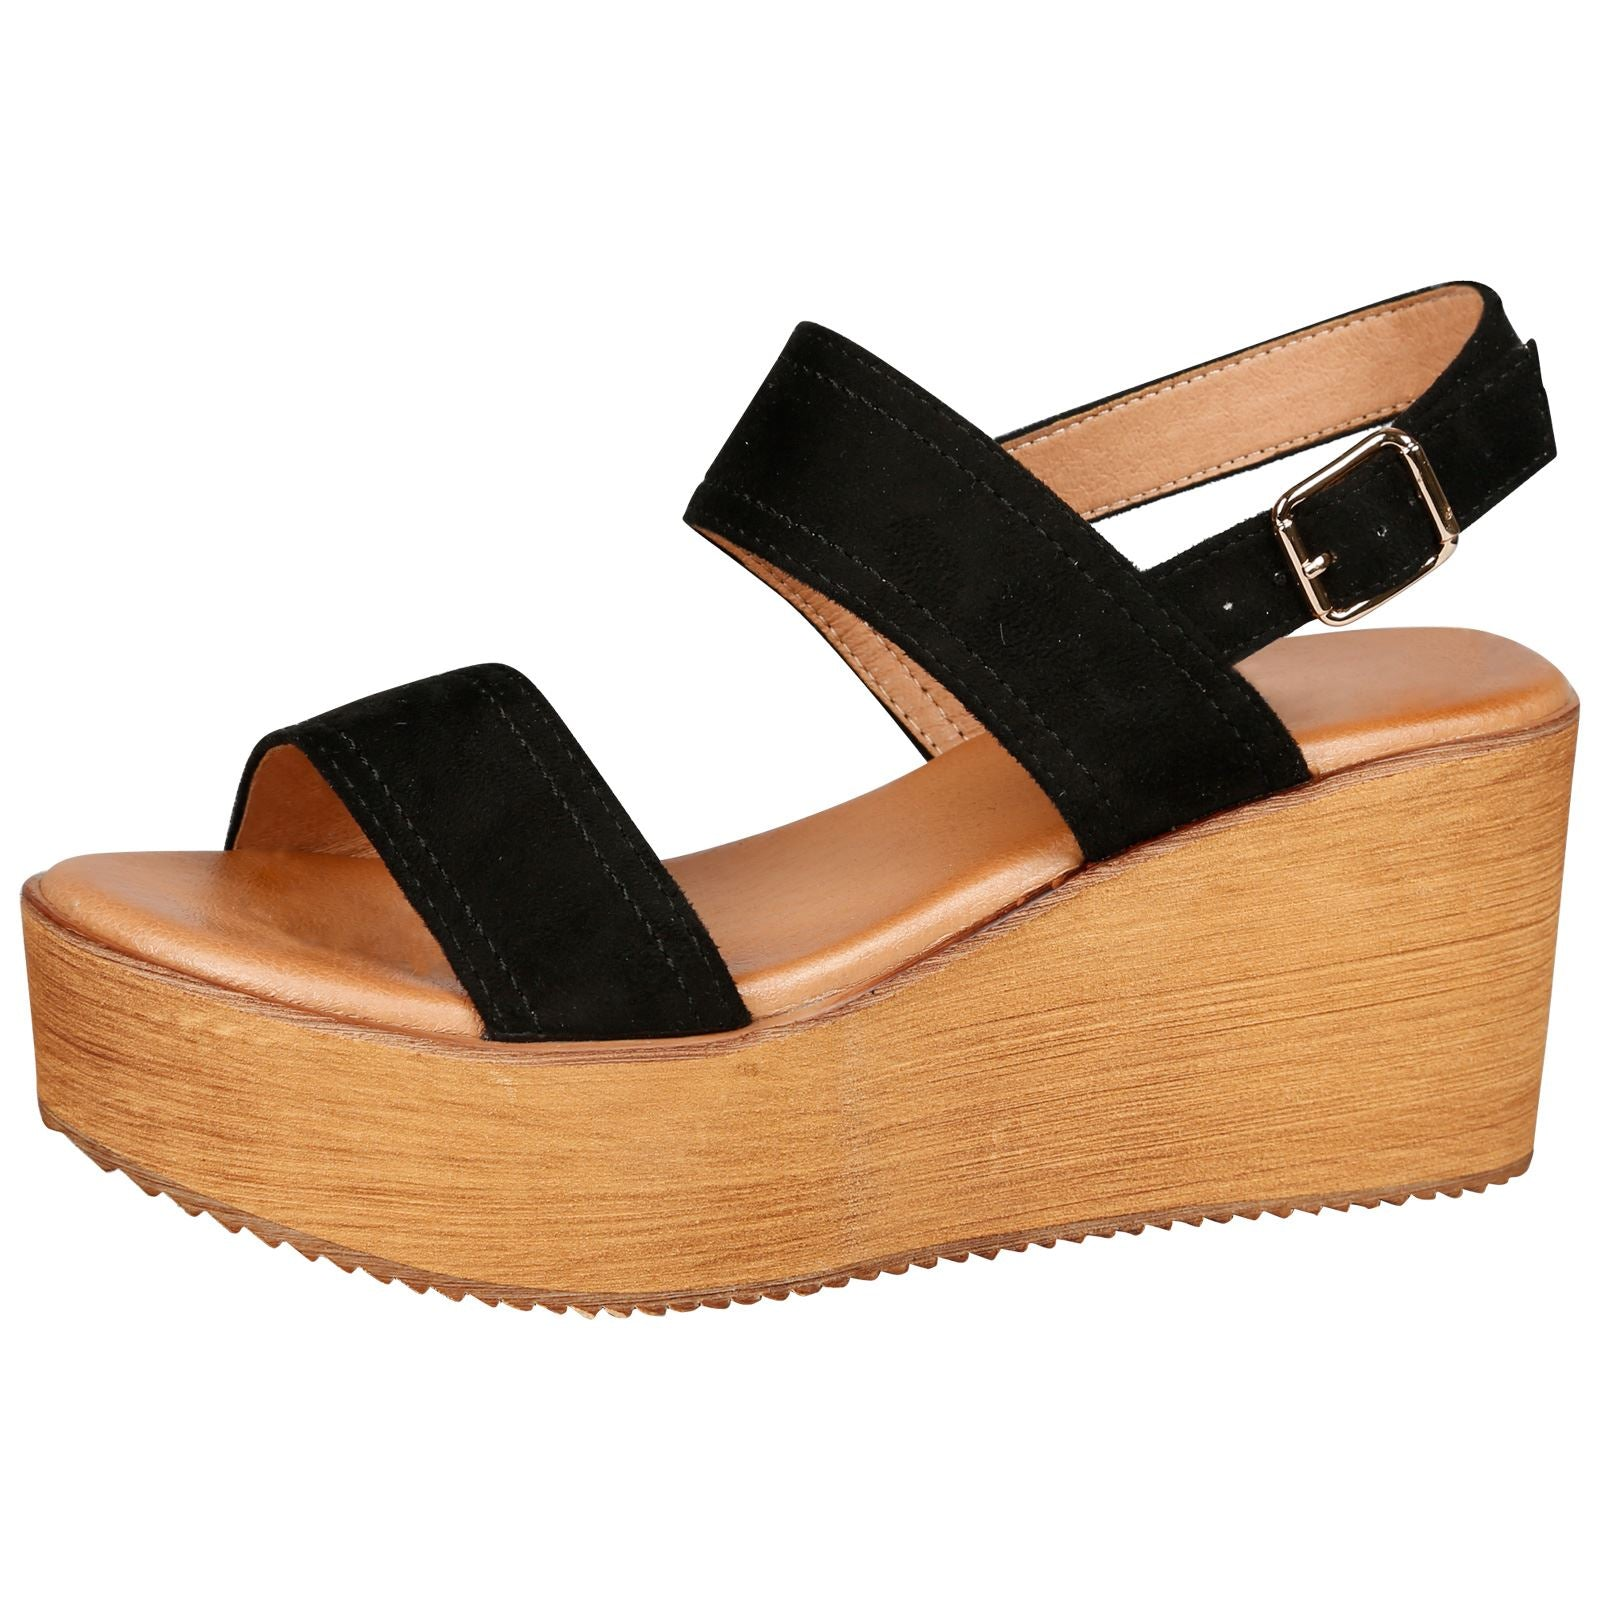 Darby Womens Platform Wedge Sandals in Black Faux Suede